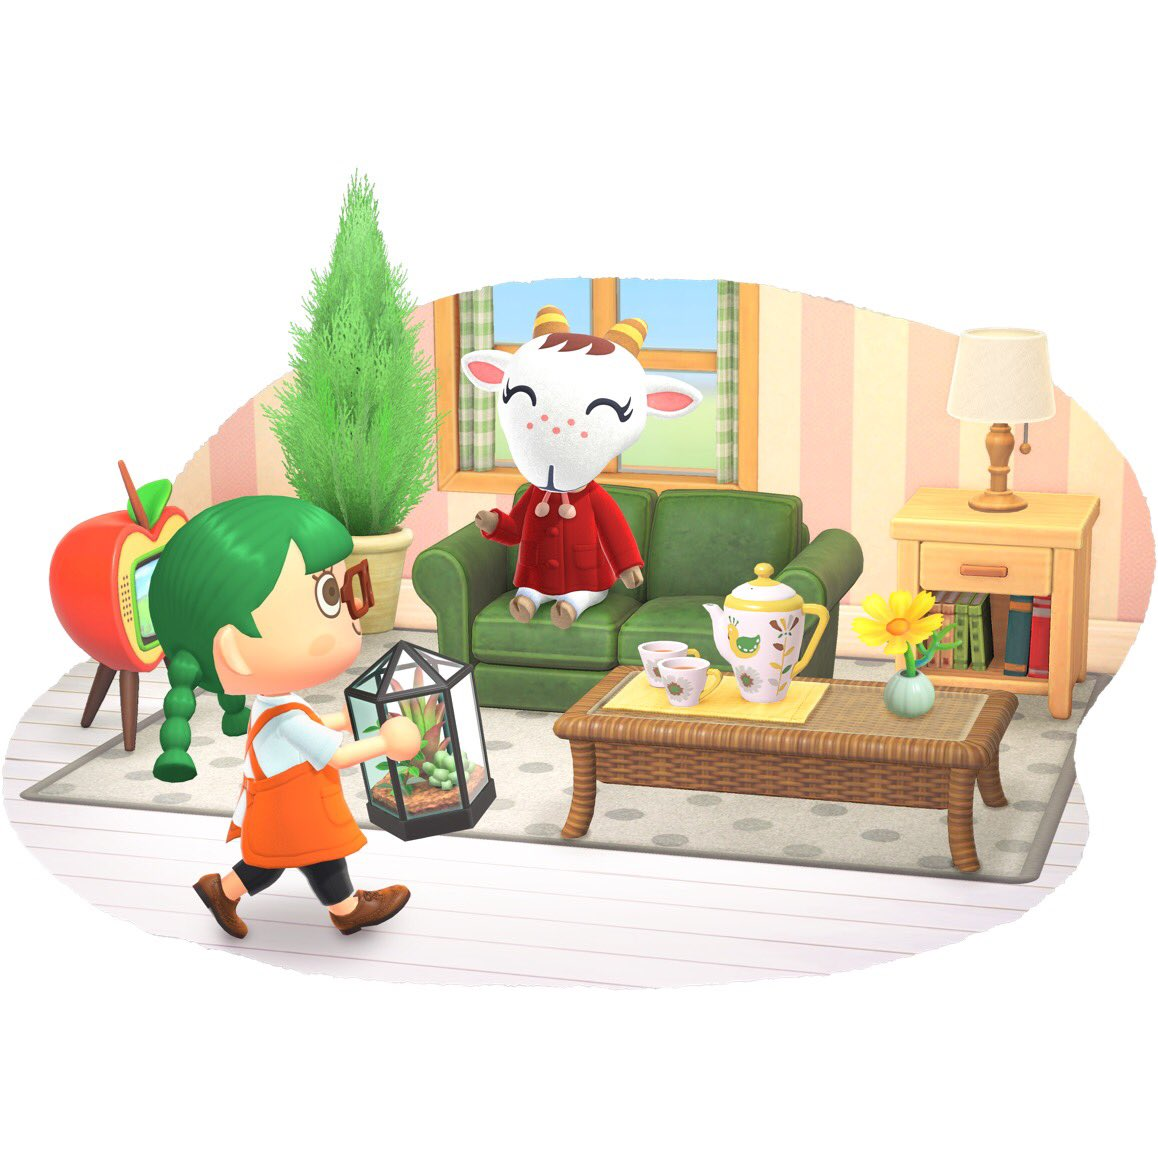 Animal Crossing New Horizons On Twitter New Renders